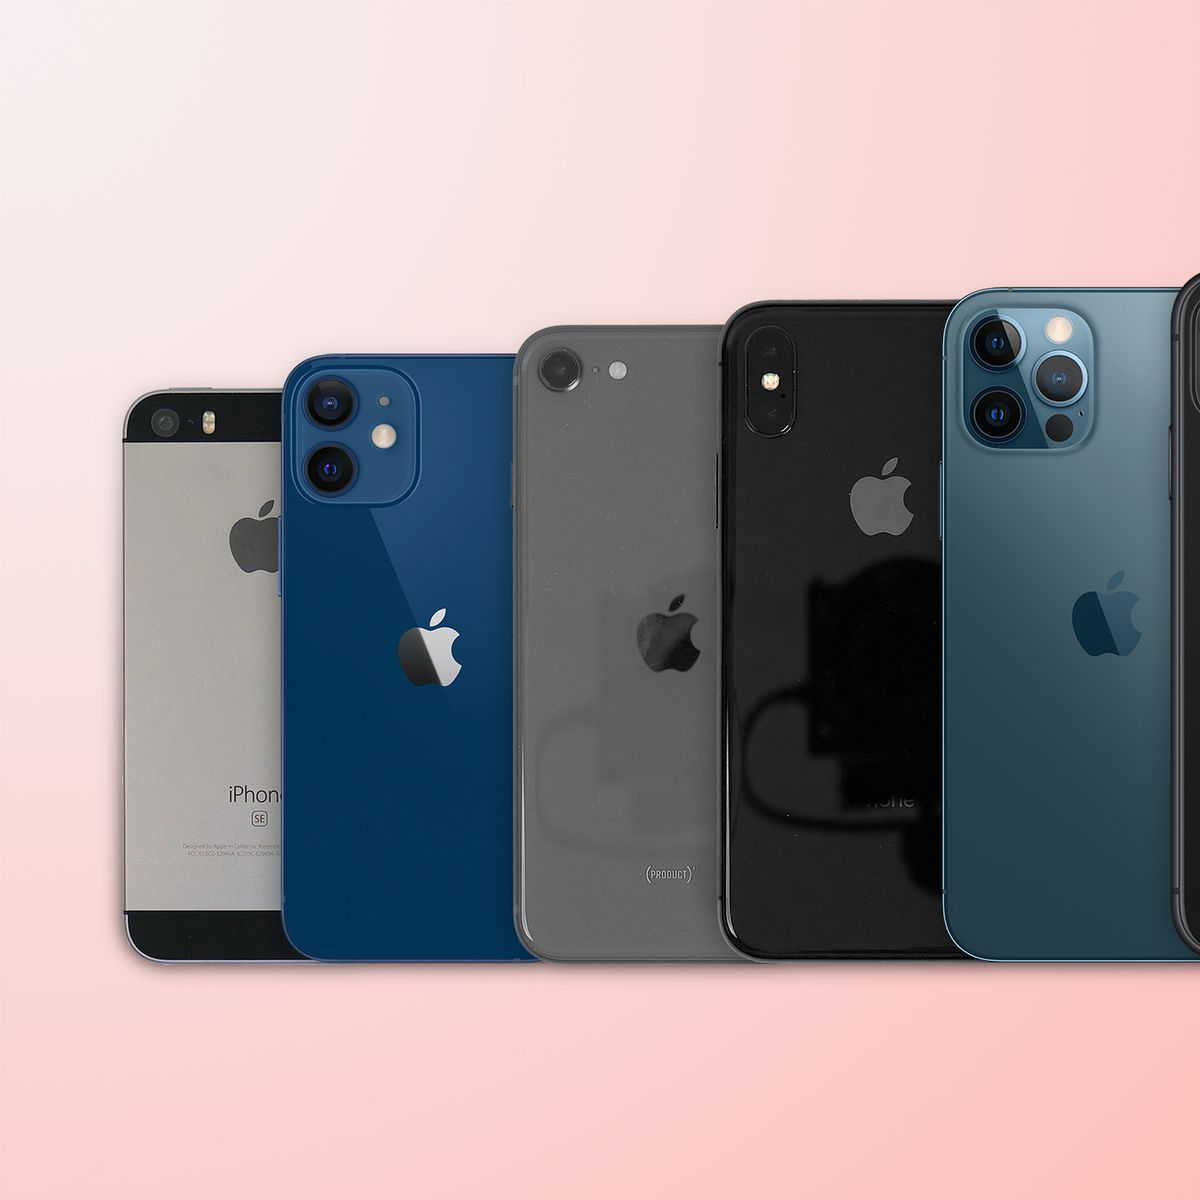 Iphone 12 Mini And Max Size Comparison All Iphone Models Side By Side Macrumors